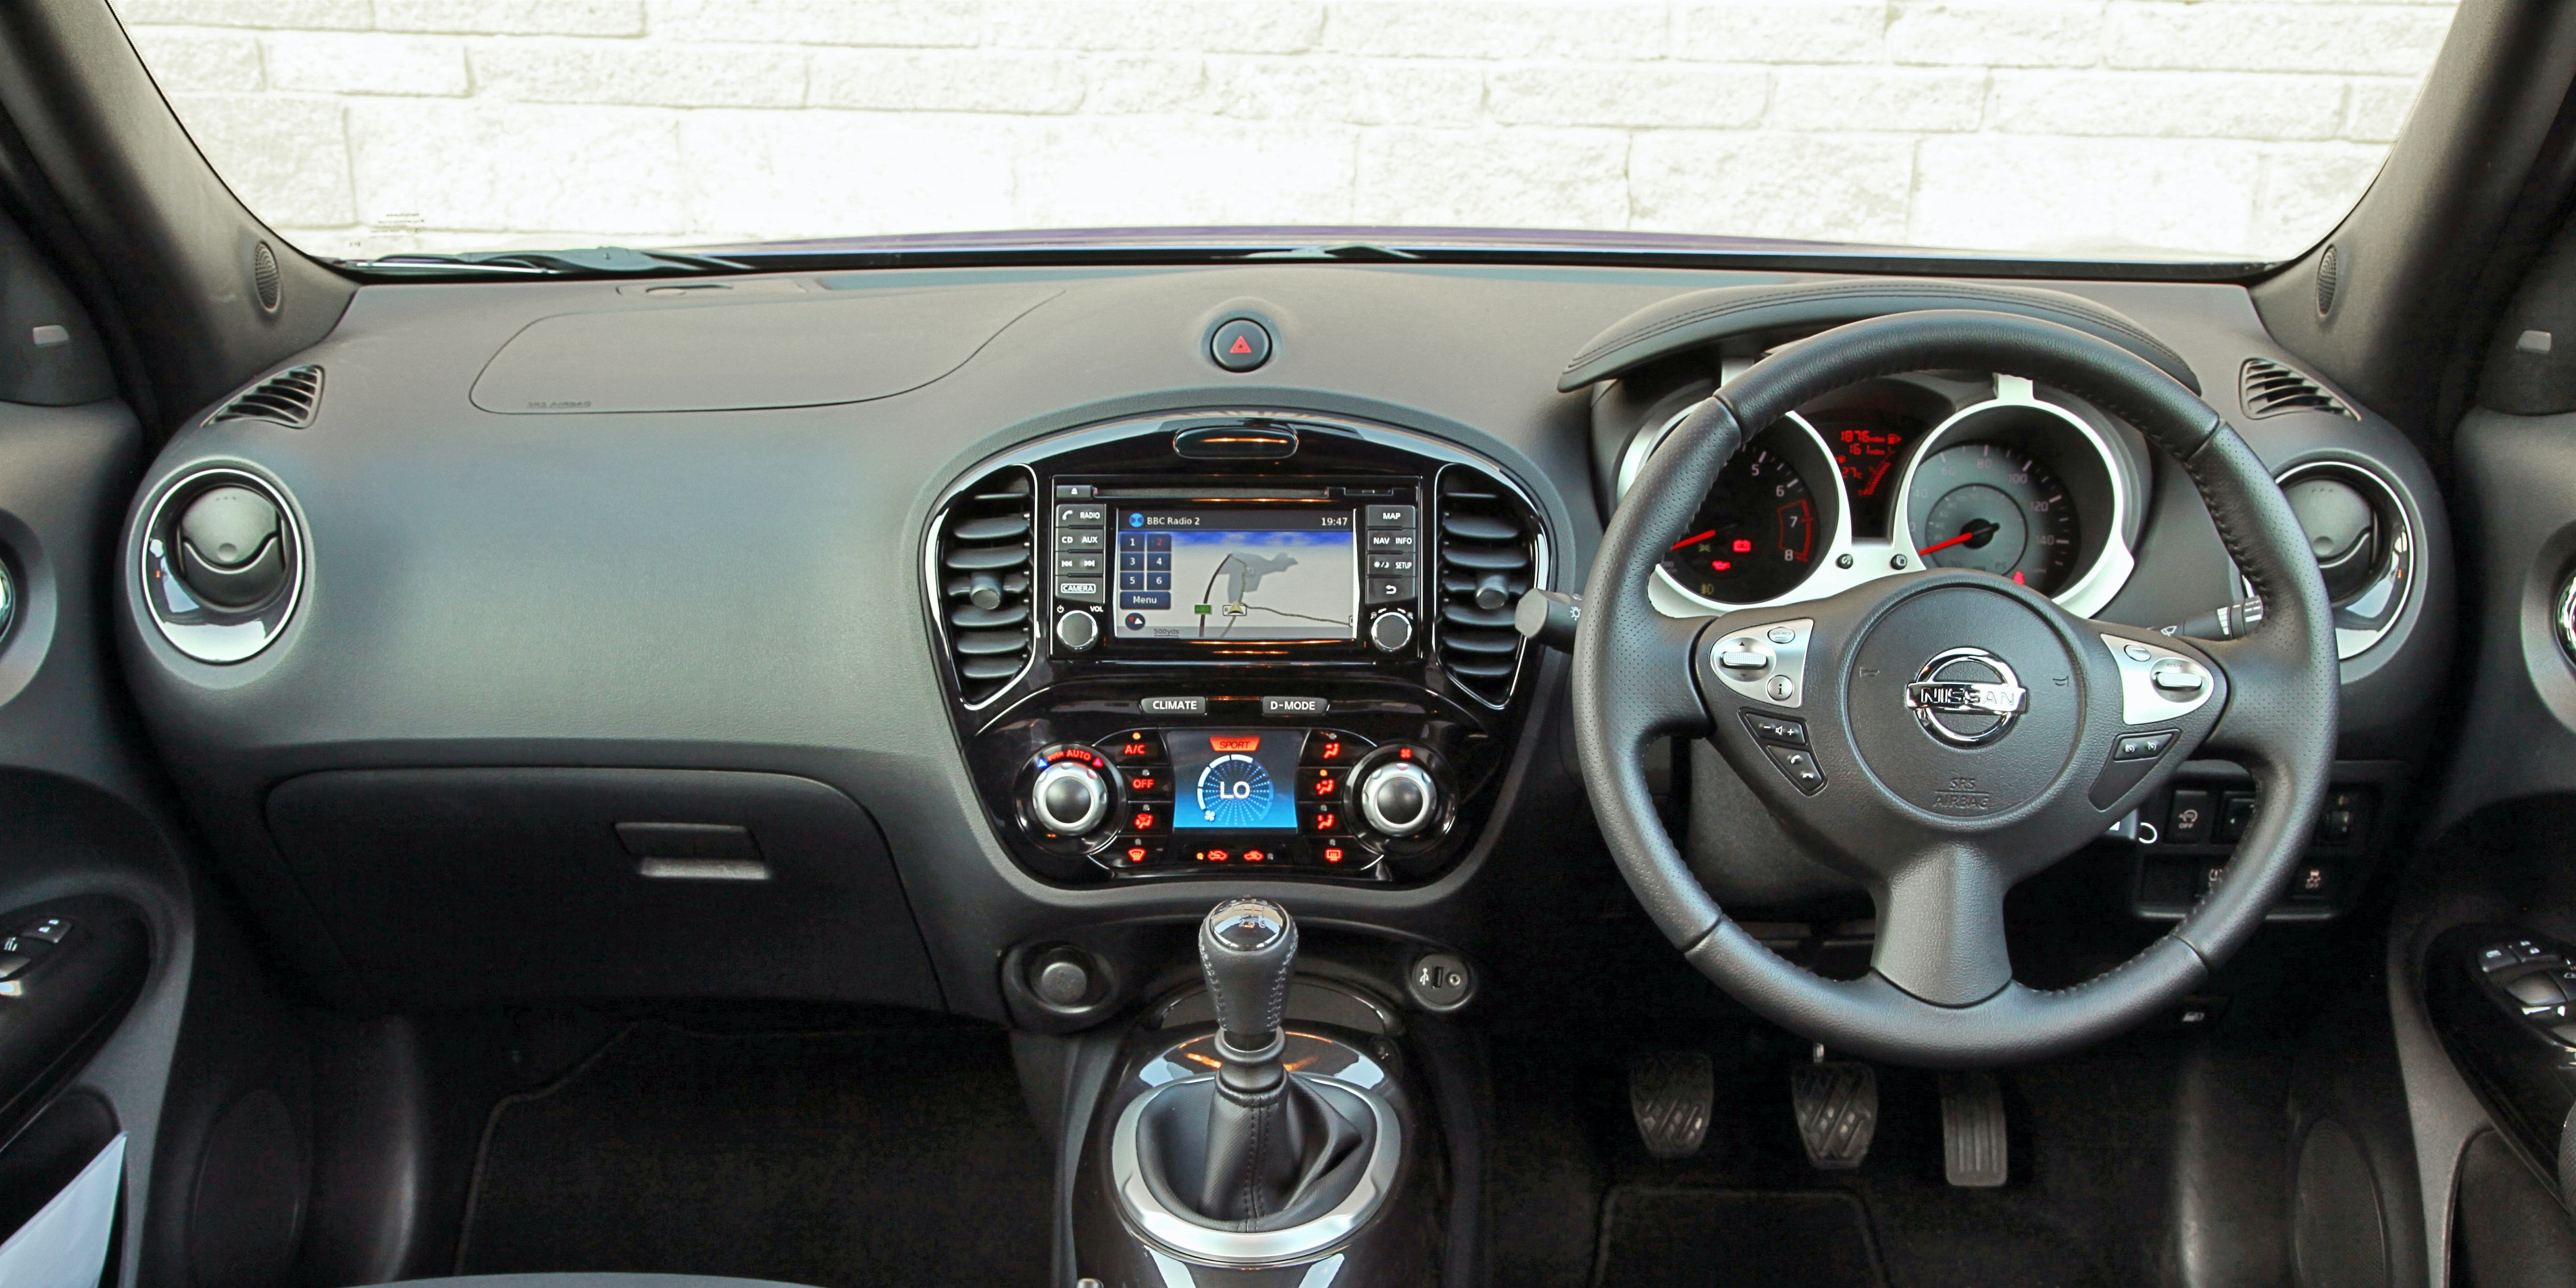 Nissan Juke Interior Photos Brokeasshome Com Make Your Own Beautiful  HD Wallpapers, Images Over 1000+ [ralydesign.ml]